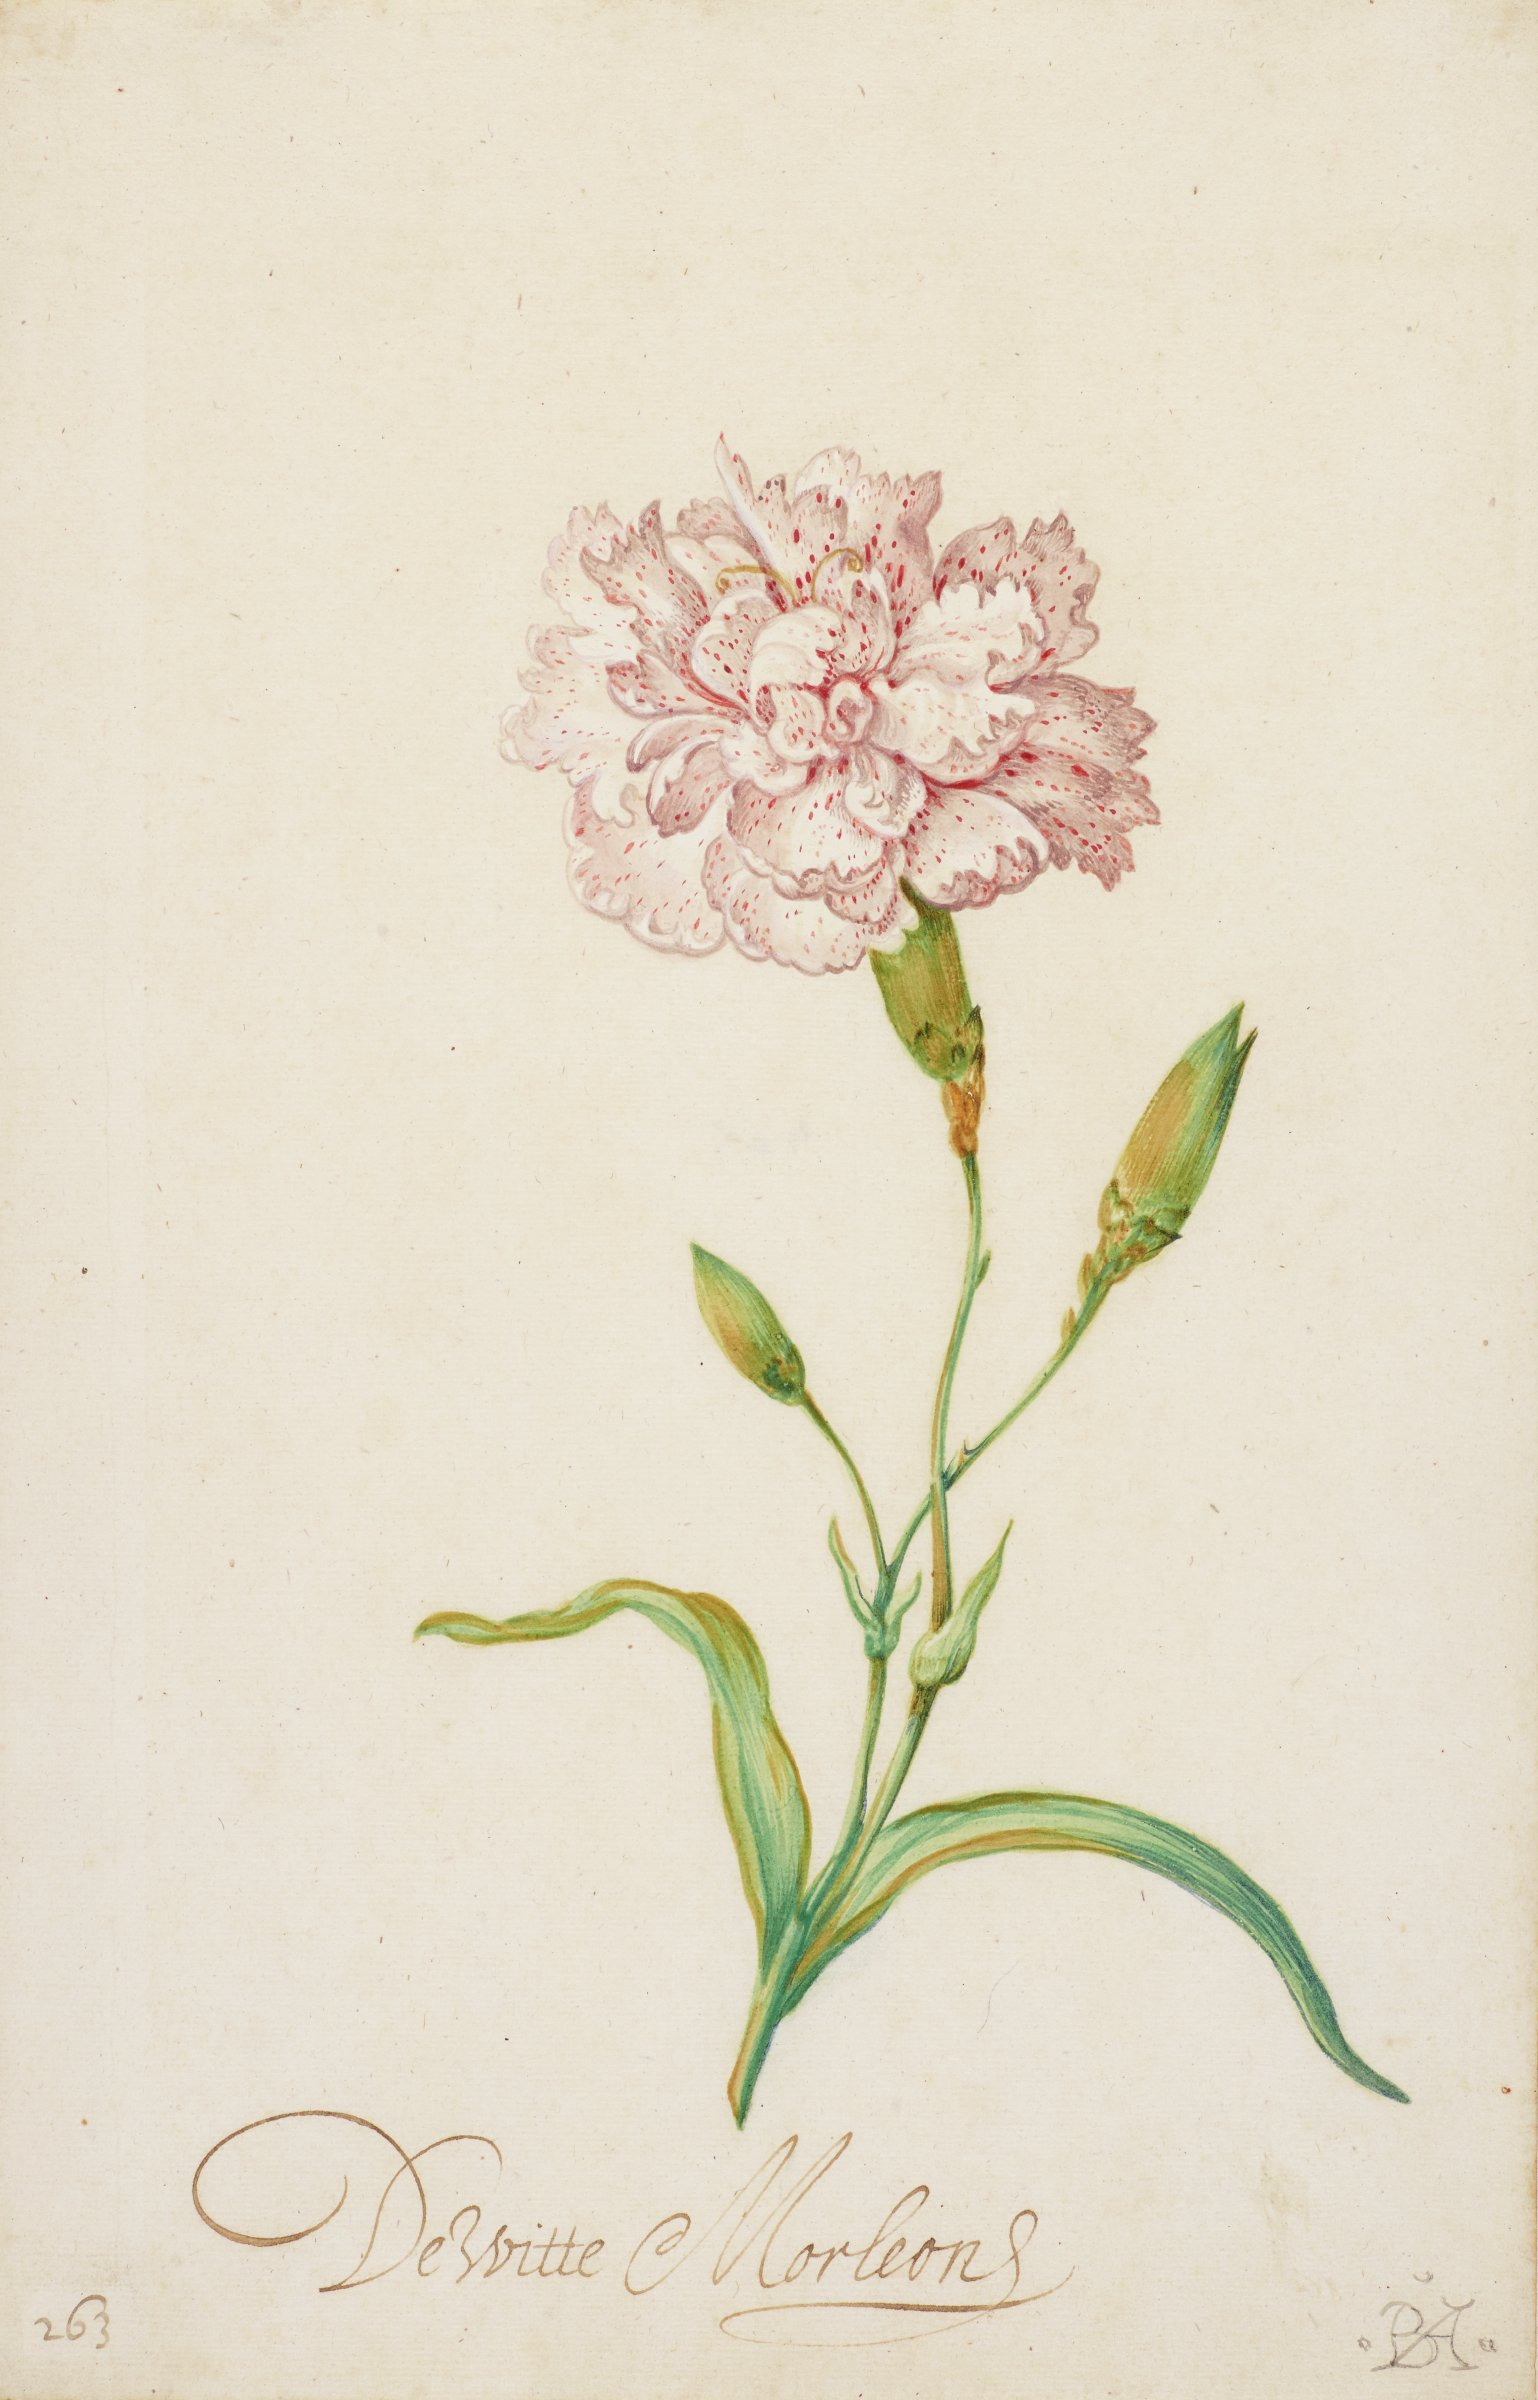 Plant with single flower; carnation is white with pale shades of pink and darker pink spots. Two additional stems with closed buds.